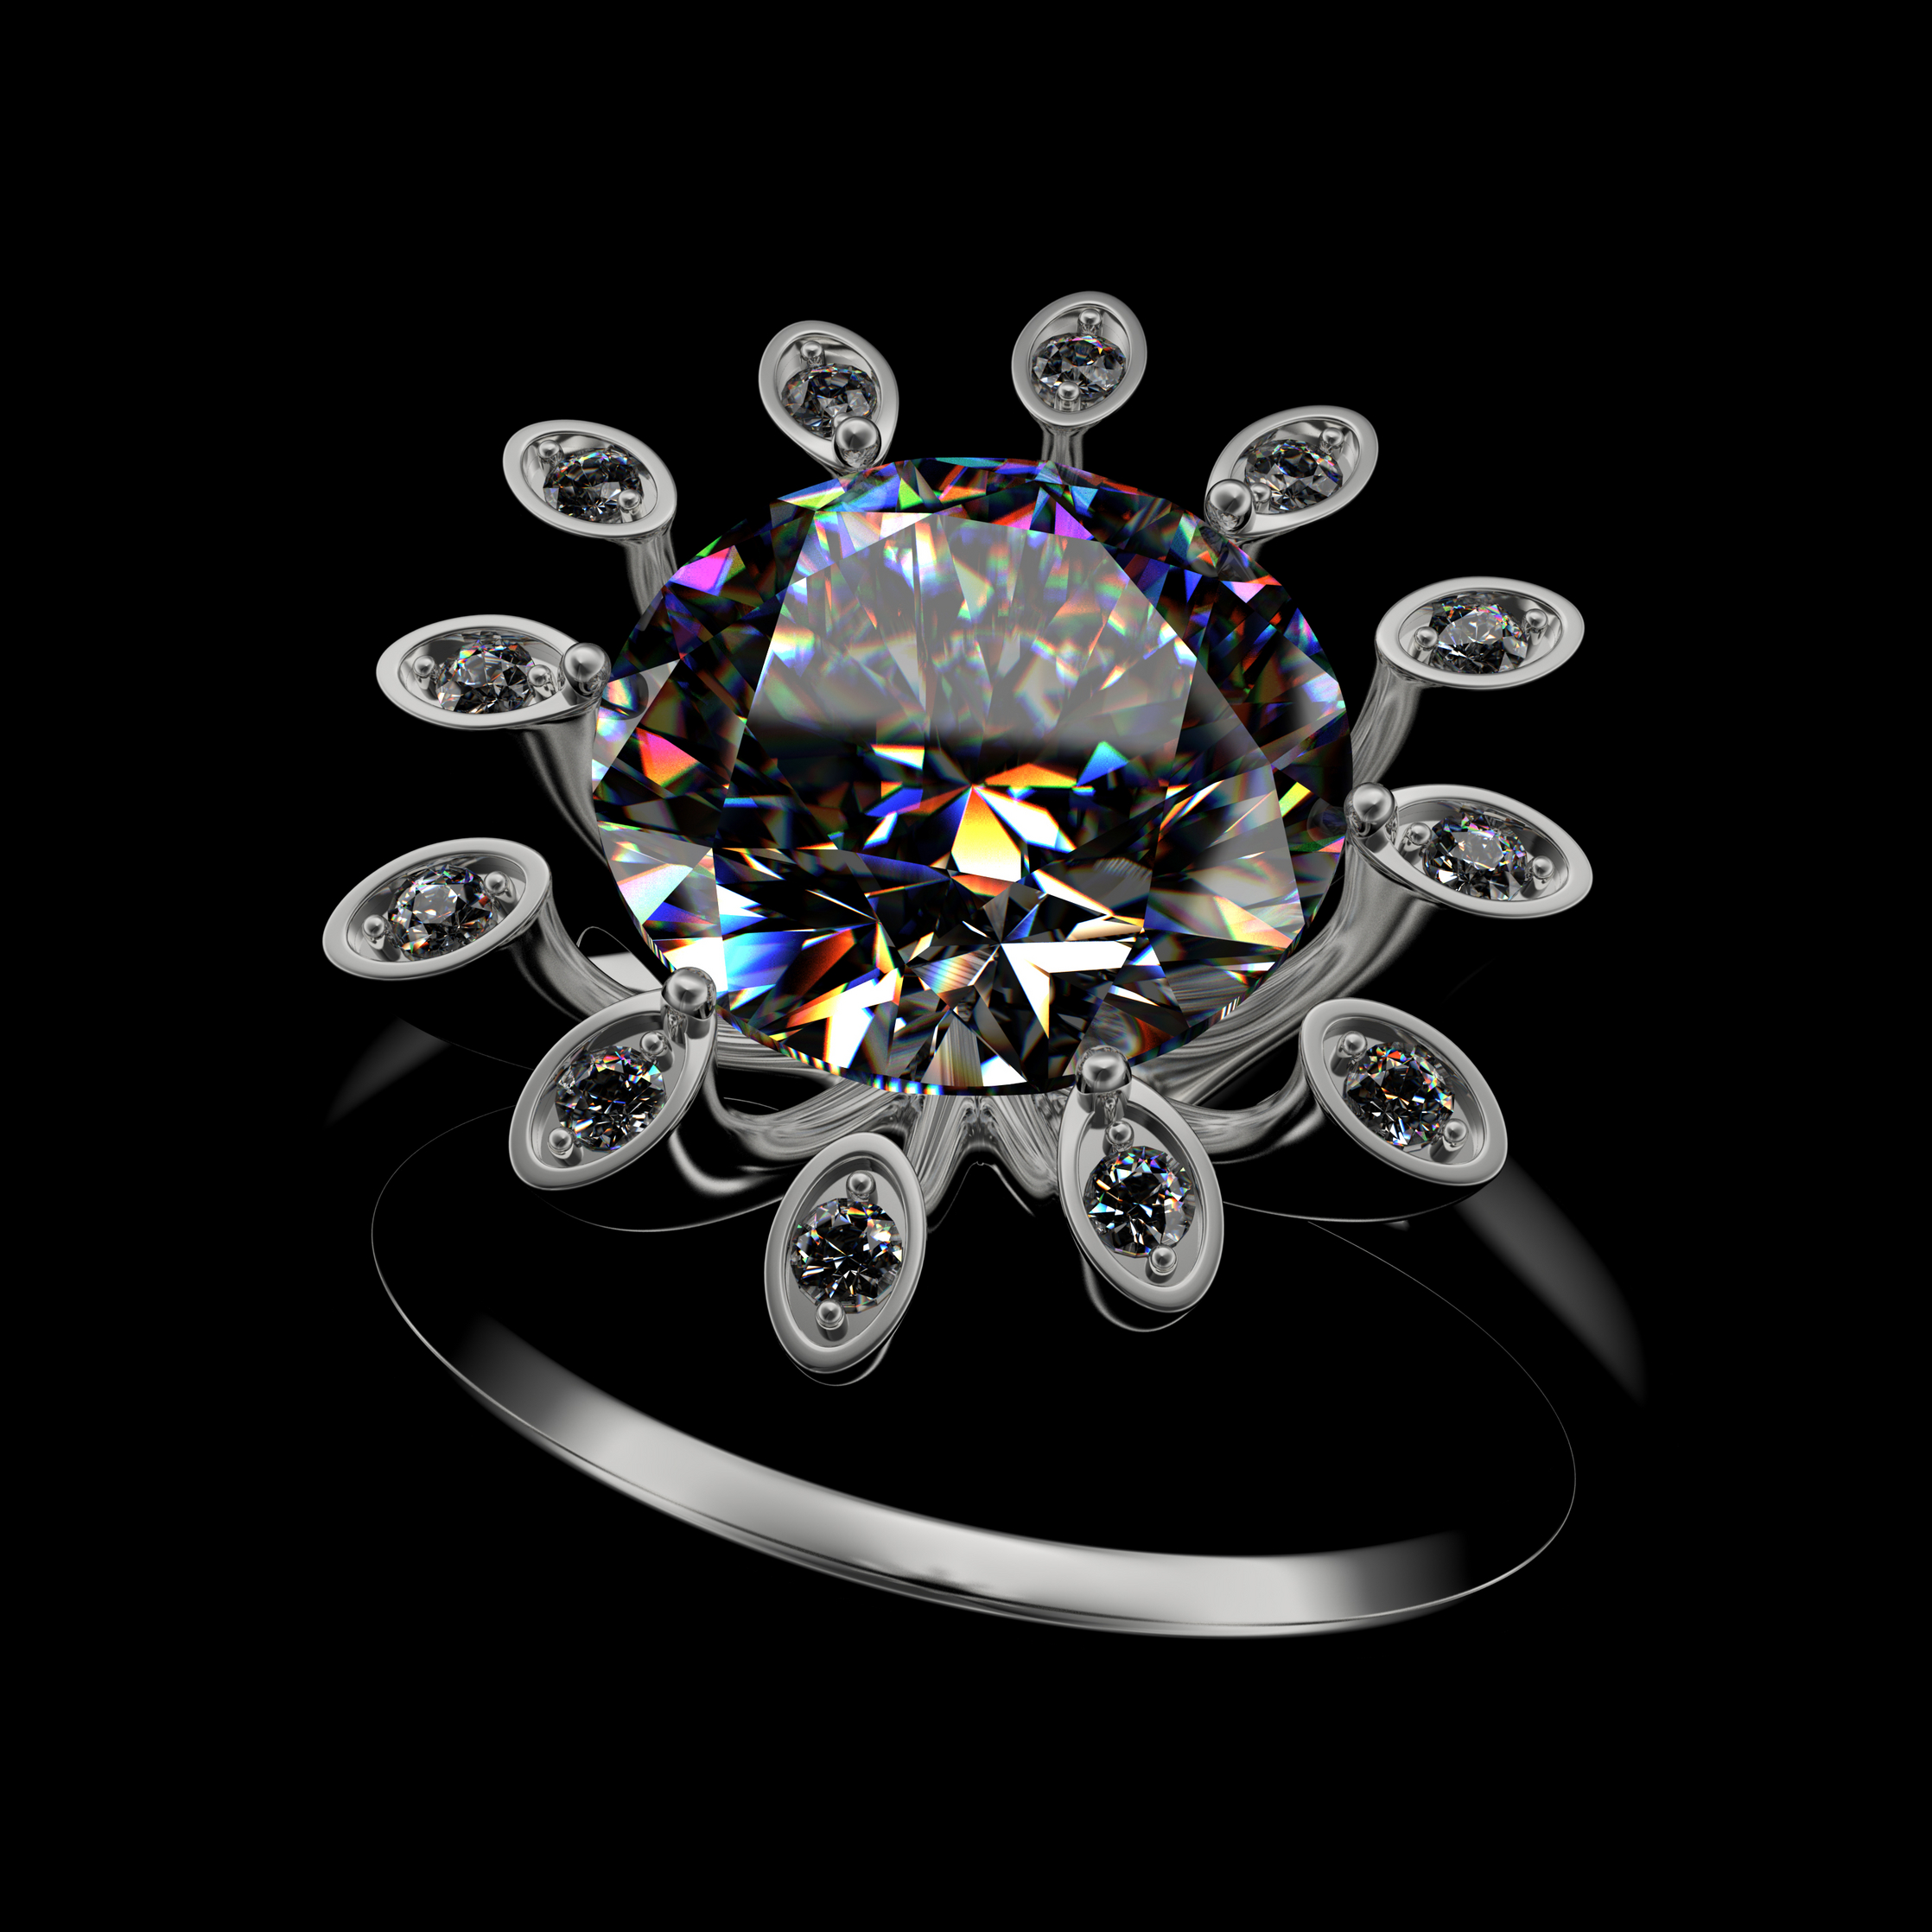 3d-rendering-of-a-diamond-ring--imagio10048208